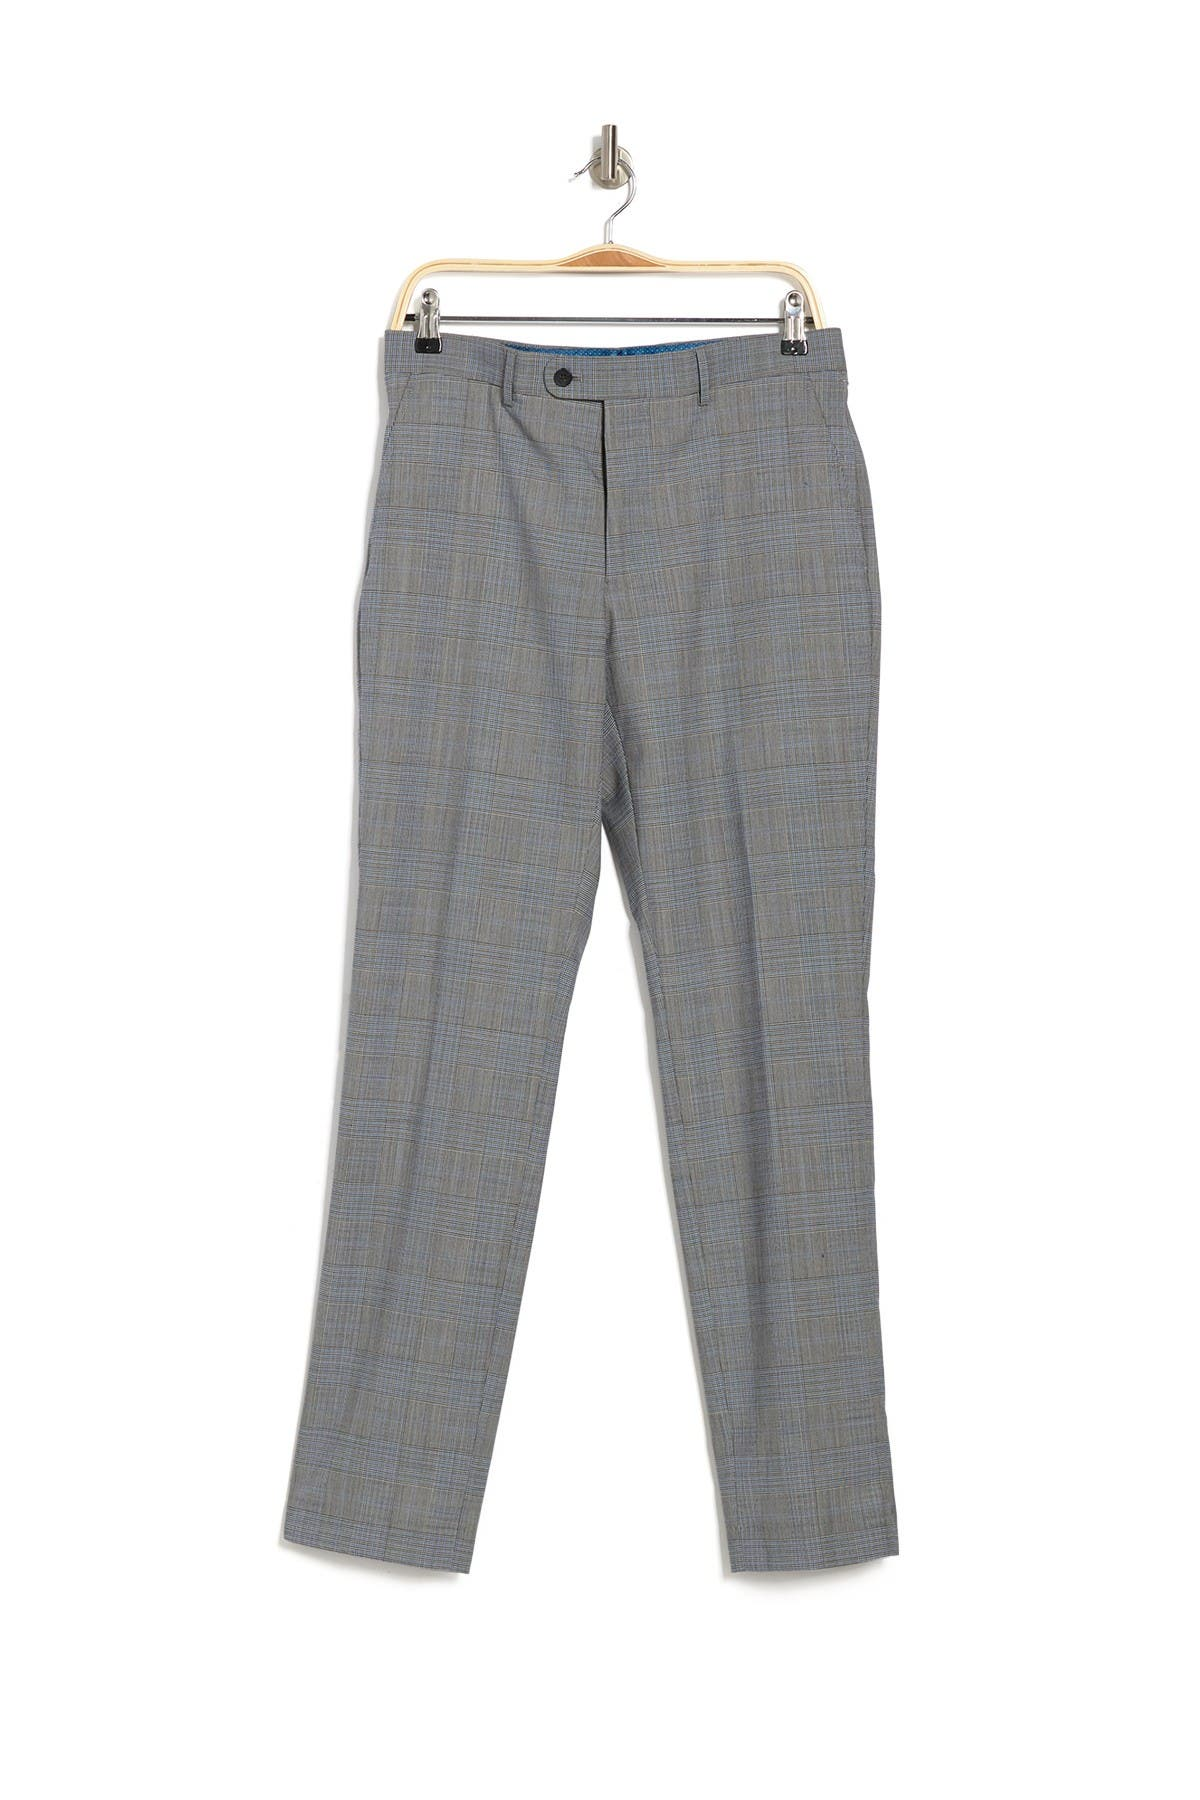 Image of Original Penguin Slim Fit Plaid Printed Trousers